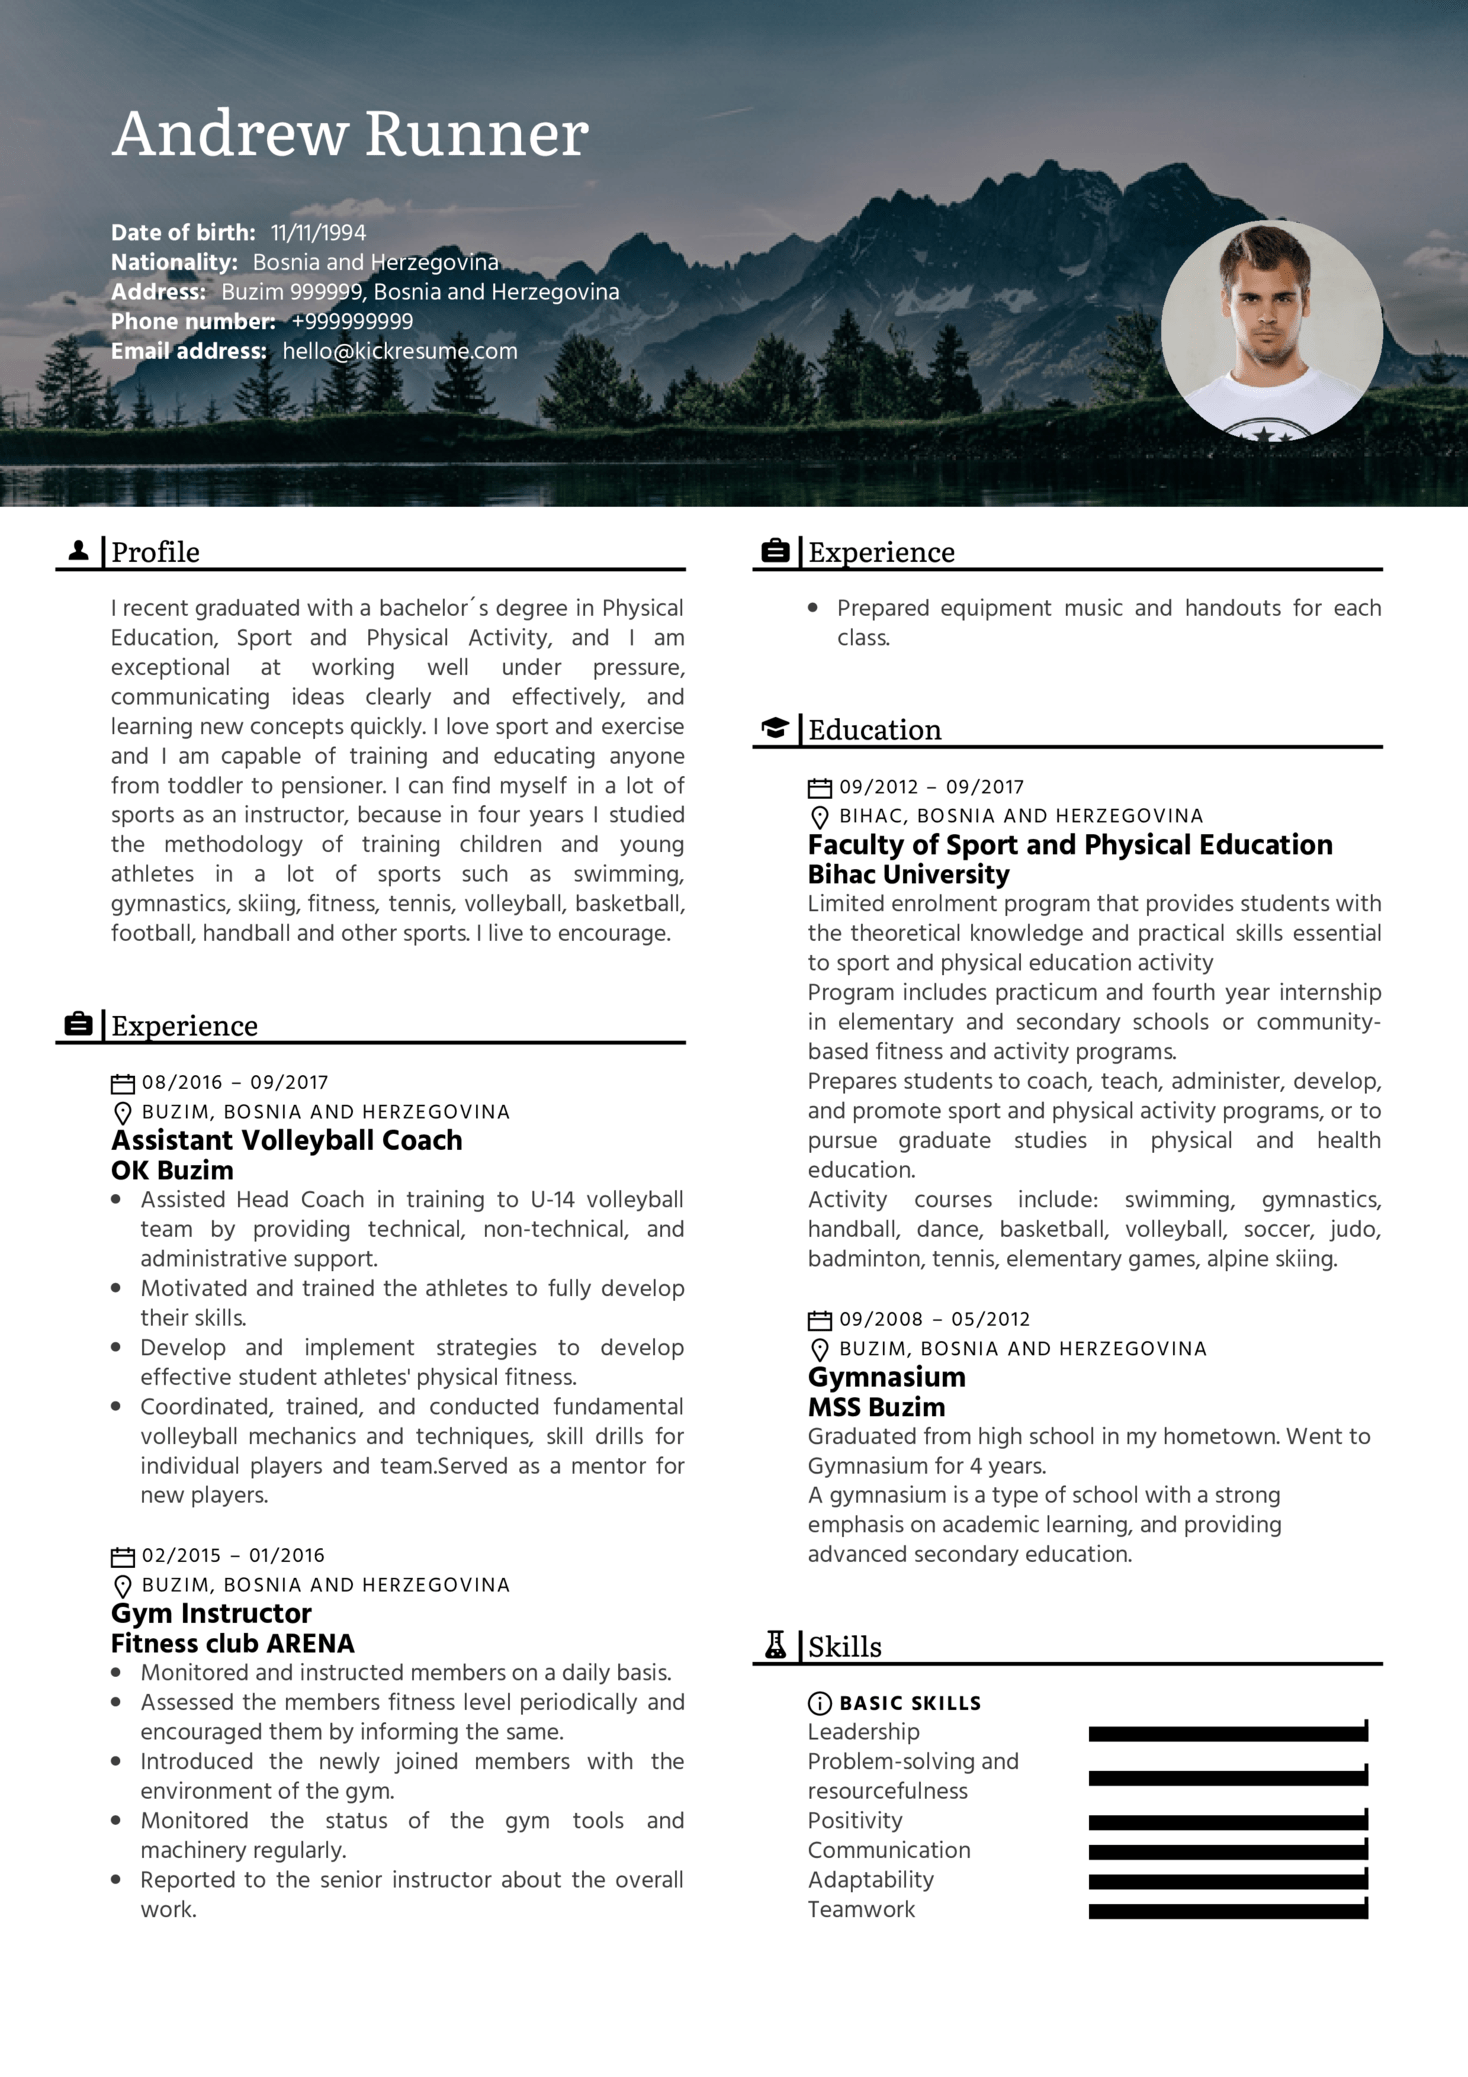 Resume Examples by Real People: Fitness instructor, Assistant coach ...